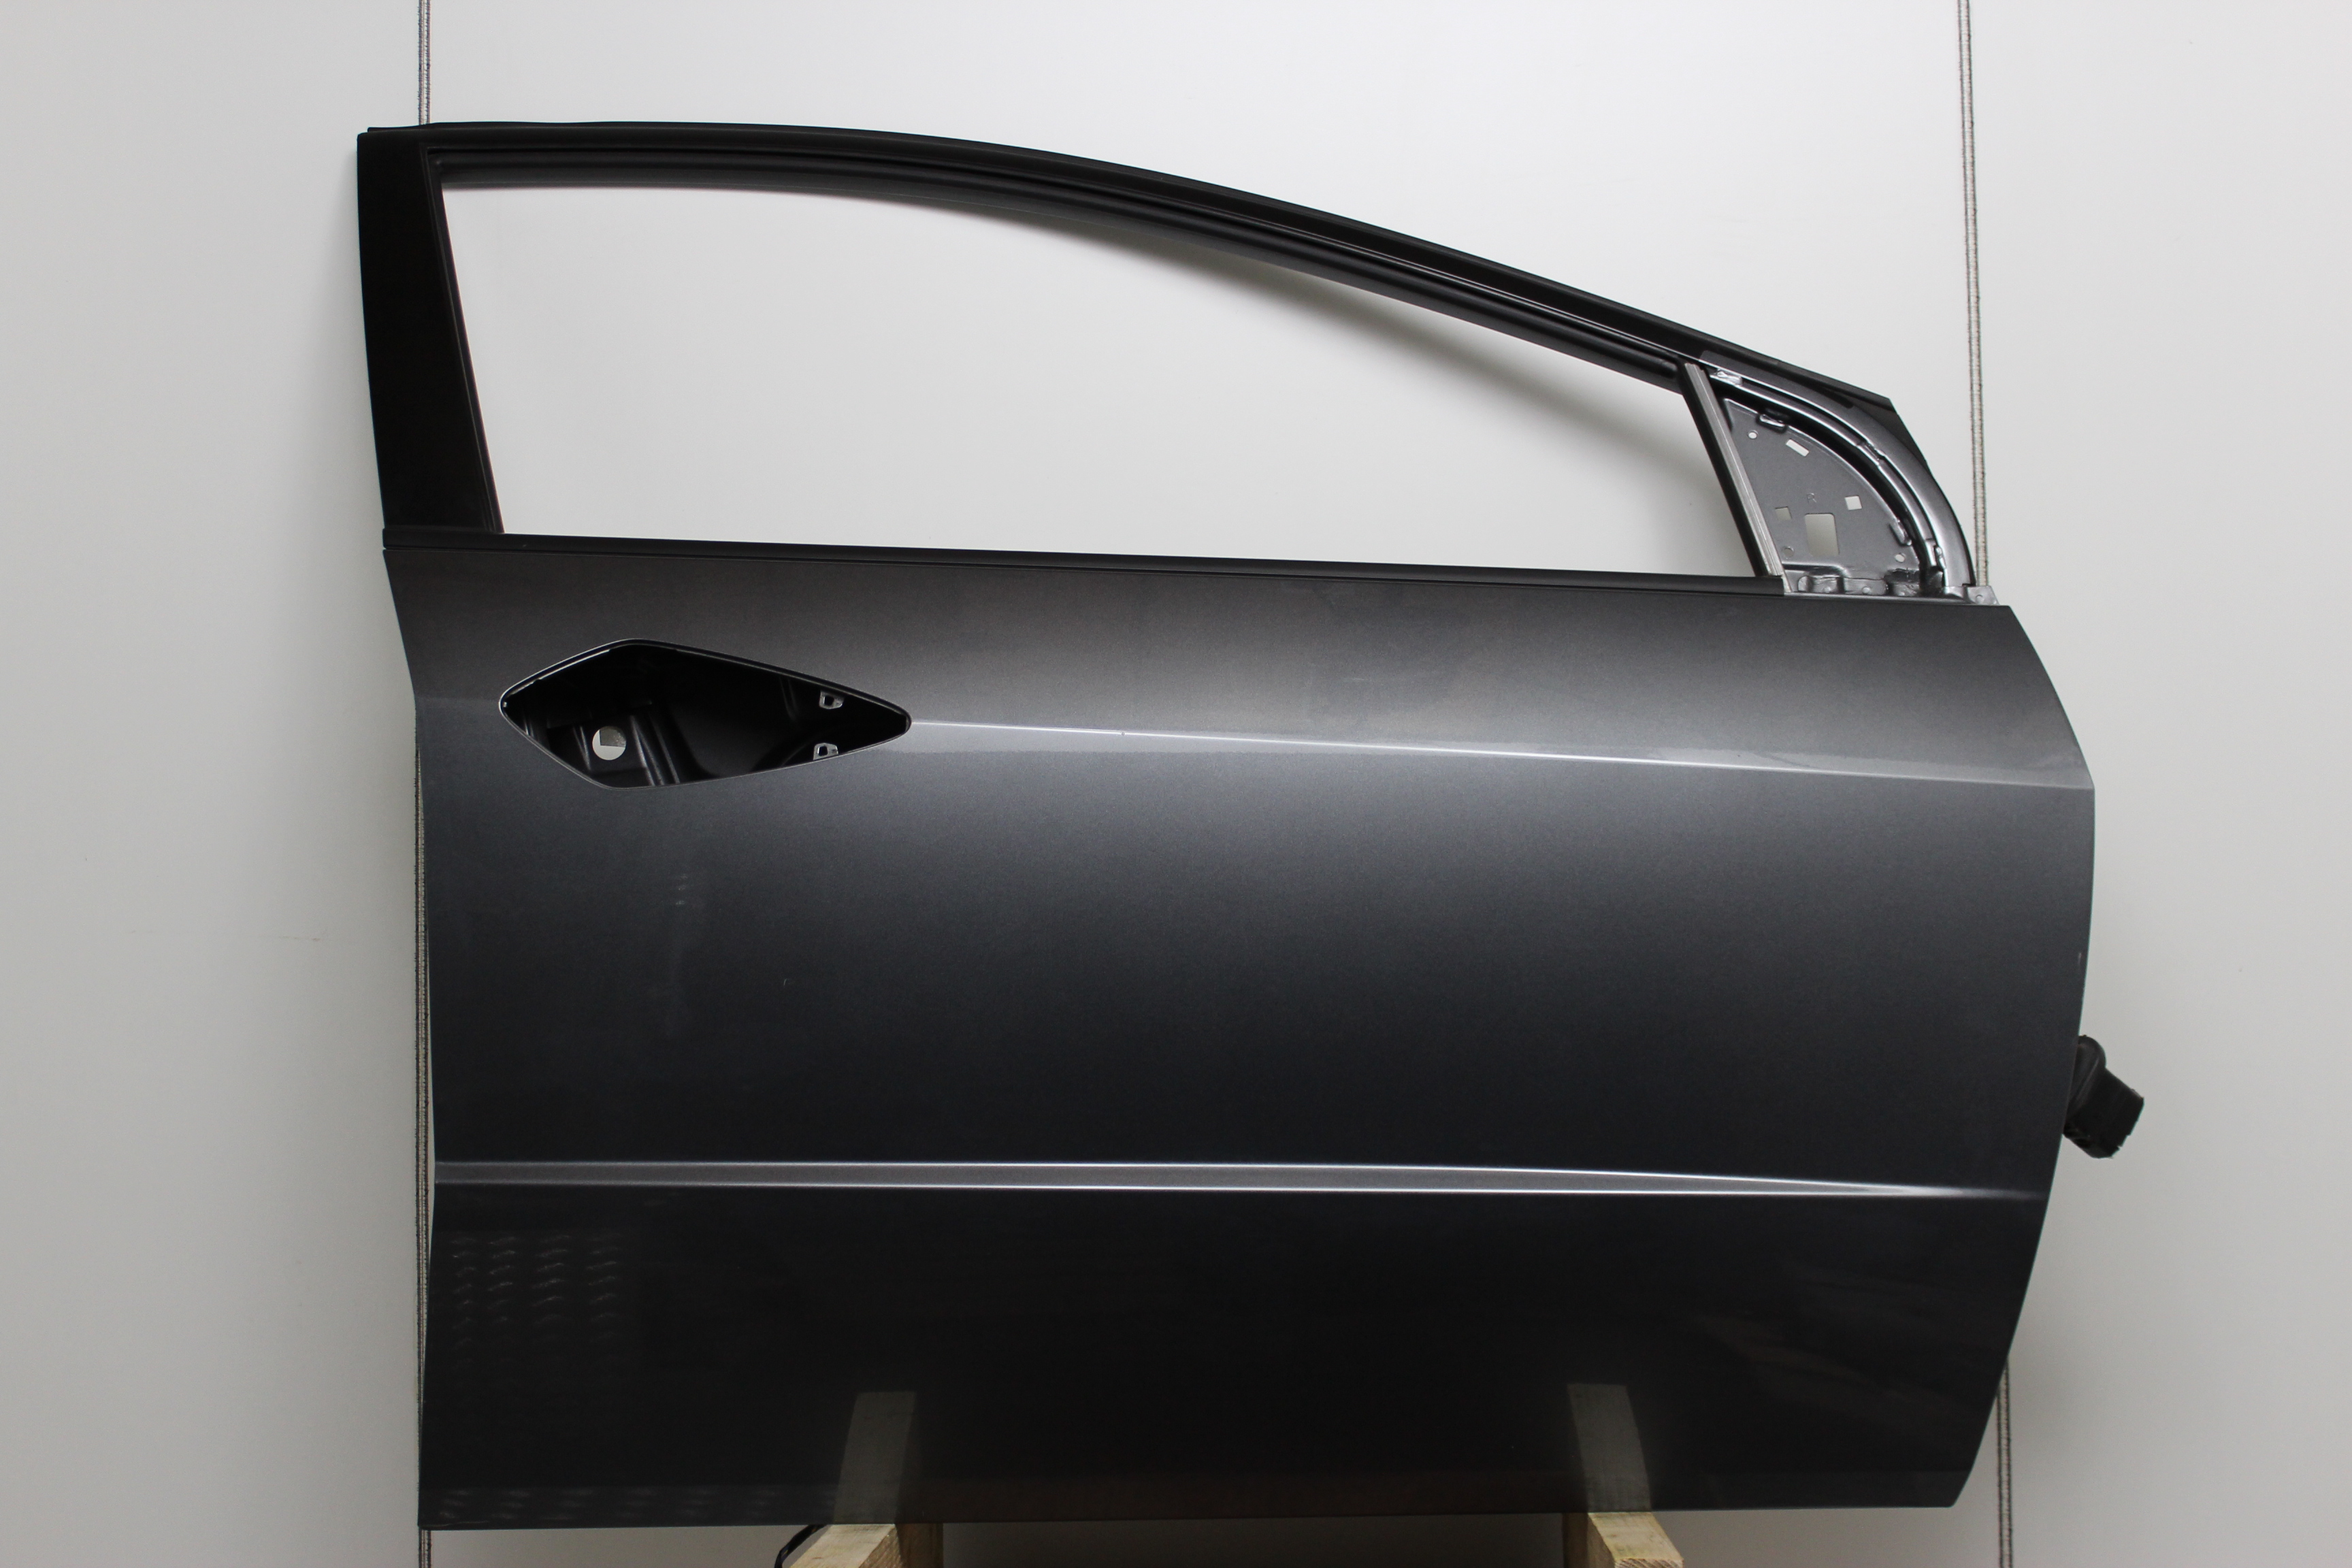 Honda Civic Door Front Drivers Side -  - Honda Civic 2010 Petrol 1.4L 2006--2011 Manual 6 Speed 5 Door Electric Mirrors, Electric Windows Front, 16 inch Alloy Wheels Engine Code L13Z1